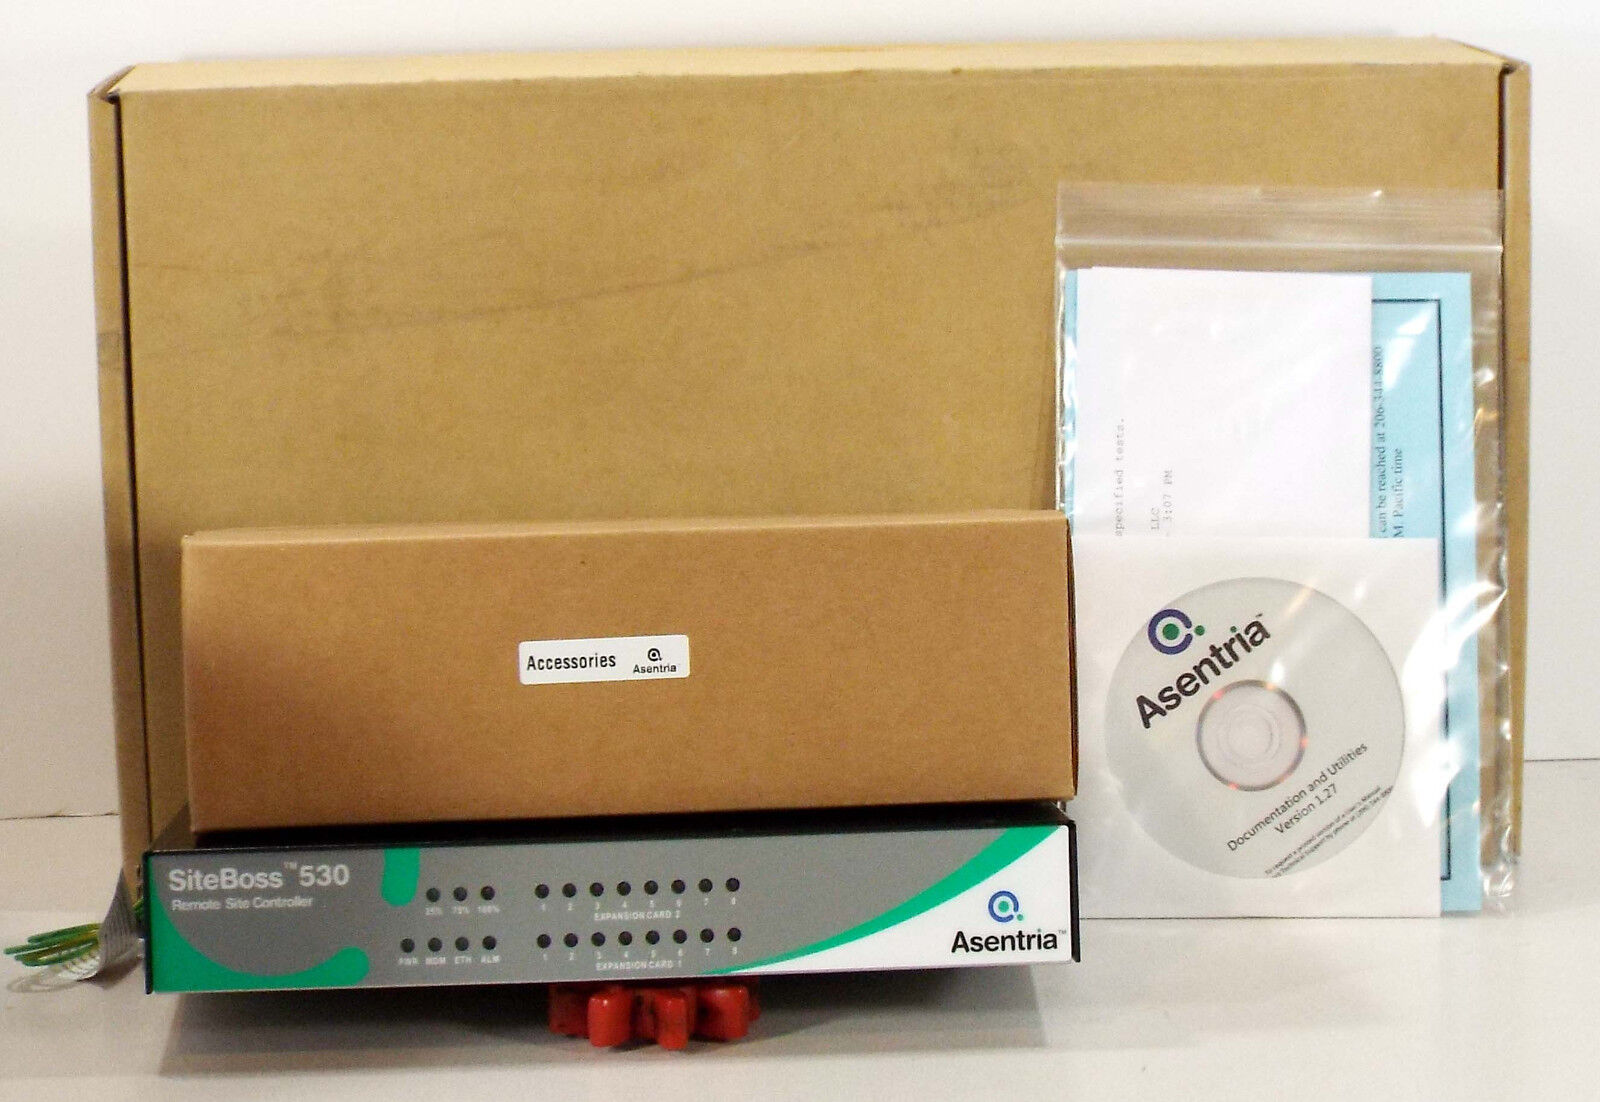 1 NEW ASENTRIA SITEBOSS 530 REMOTE SITE CONTROLLER NIB MAKE OFFER